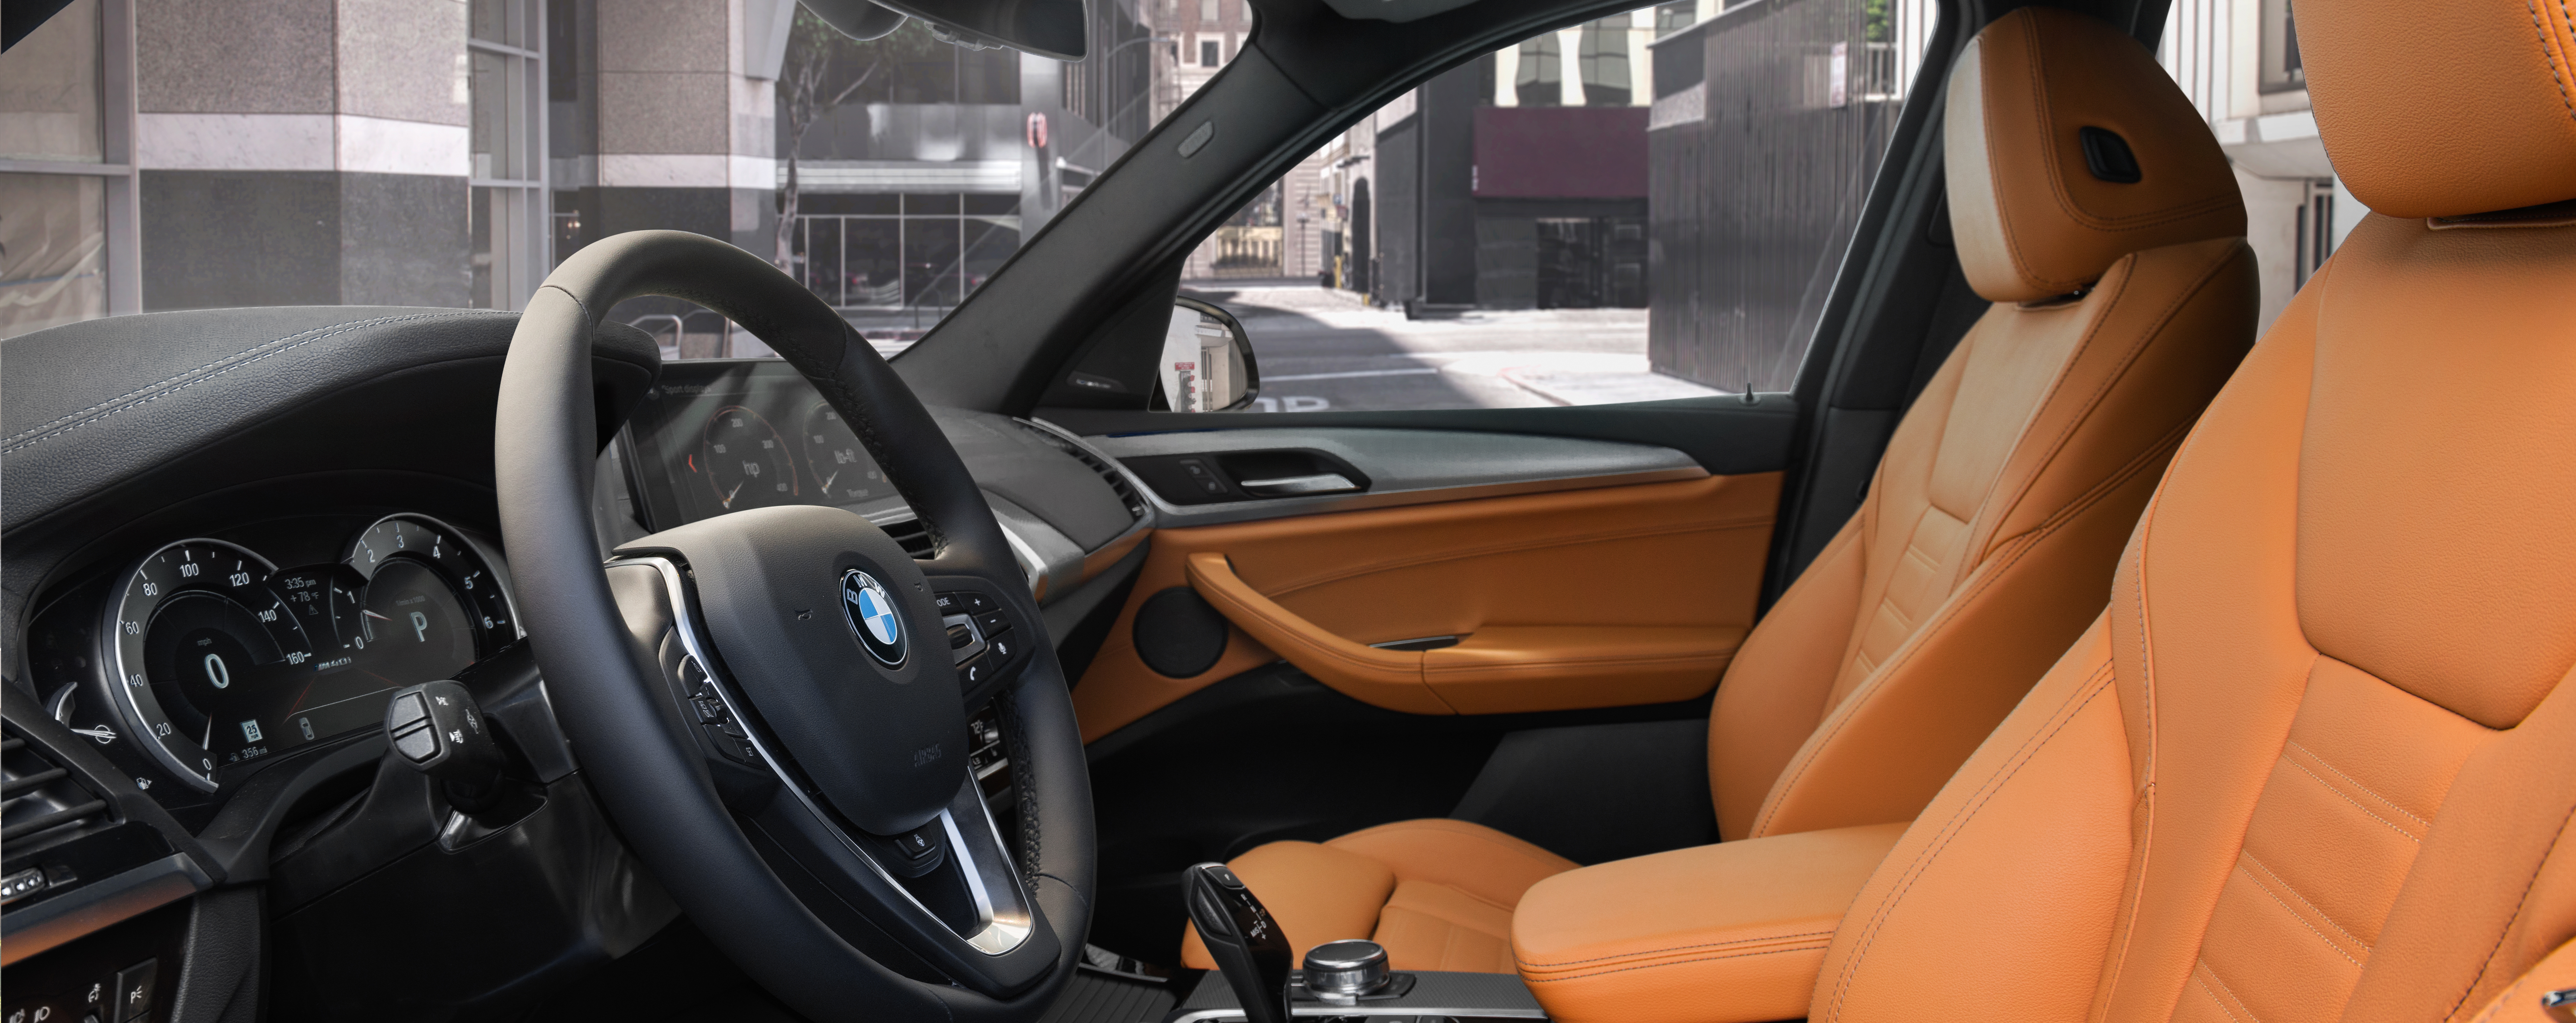 Safety features and interior of the 2018 BMW X3 and BMW X5 - available at BMW of Columbia near Lexington and Irmo, SC